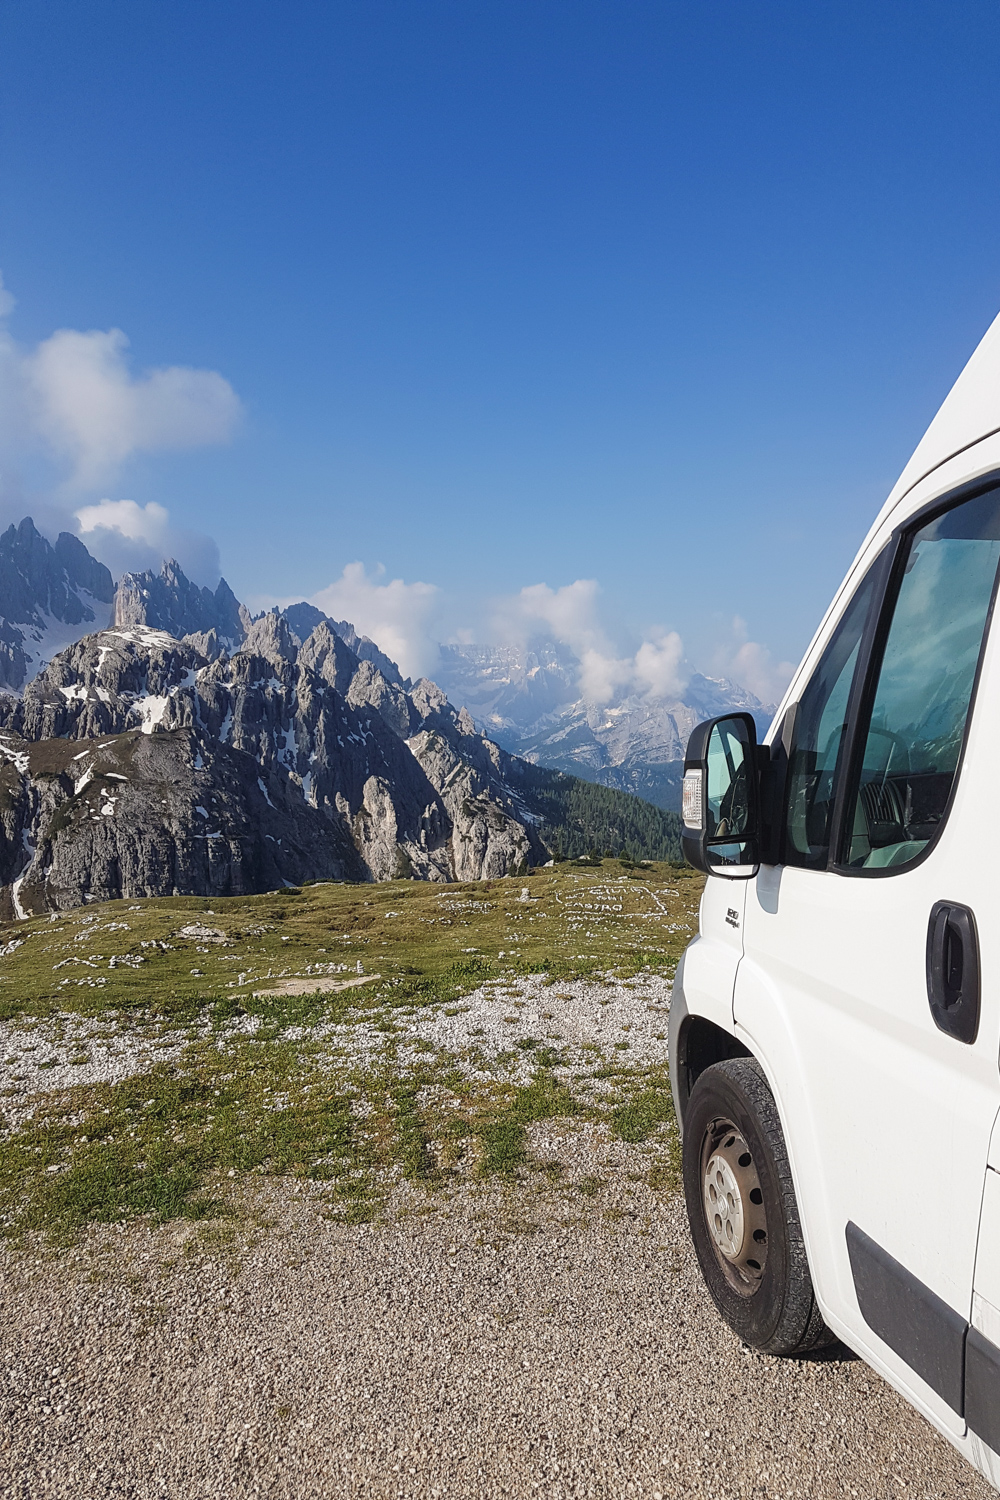 Campervan in the Dolomites, Italy